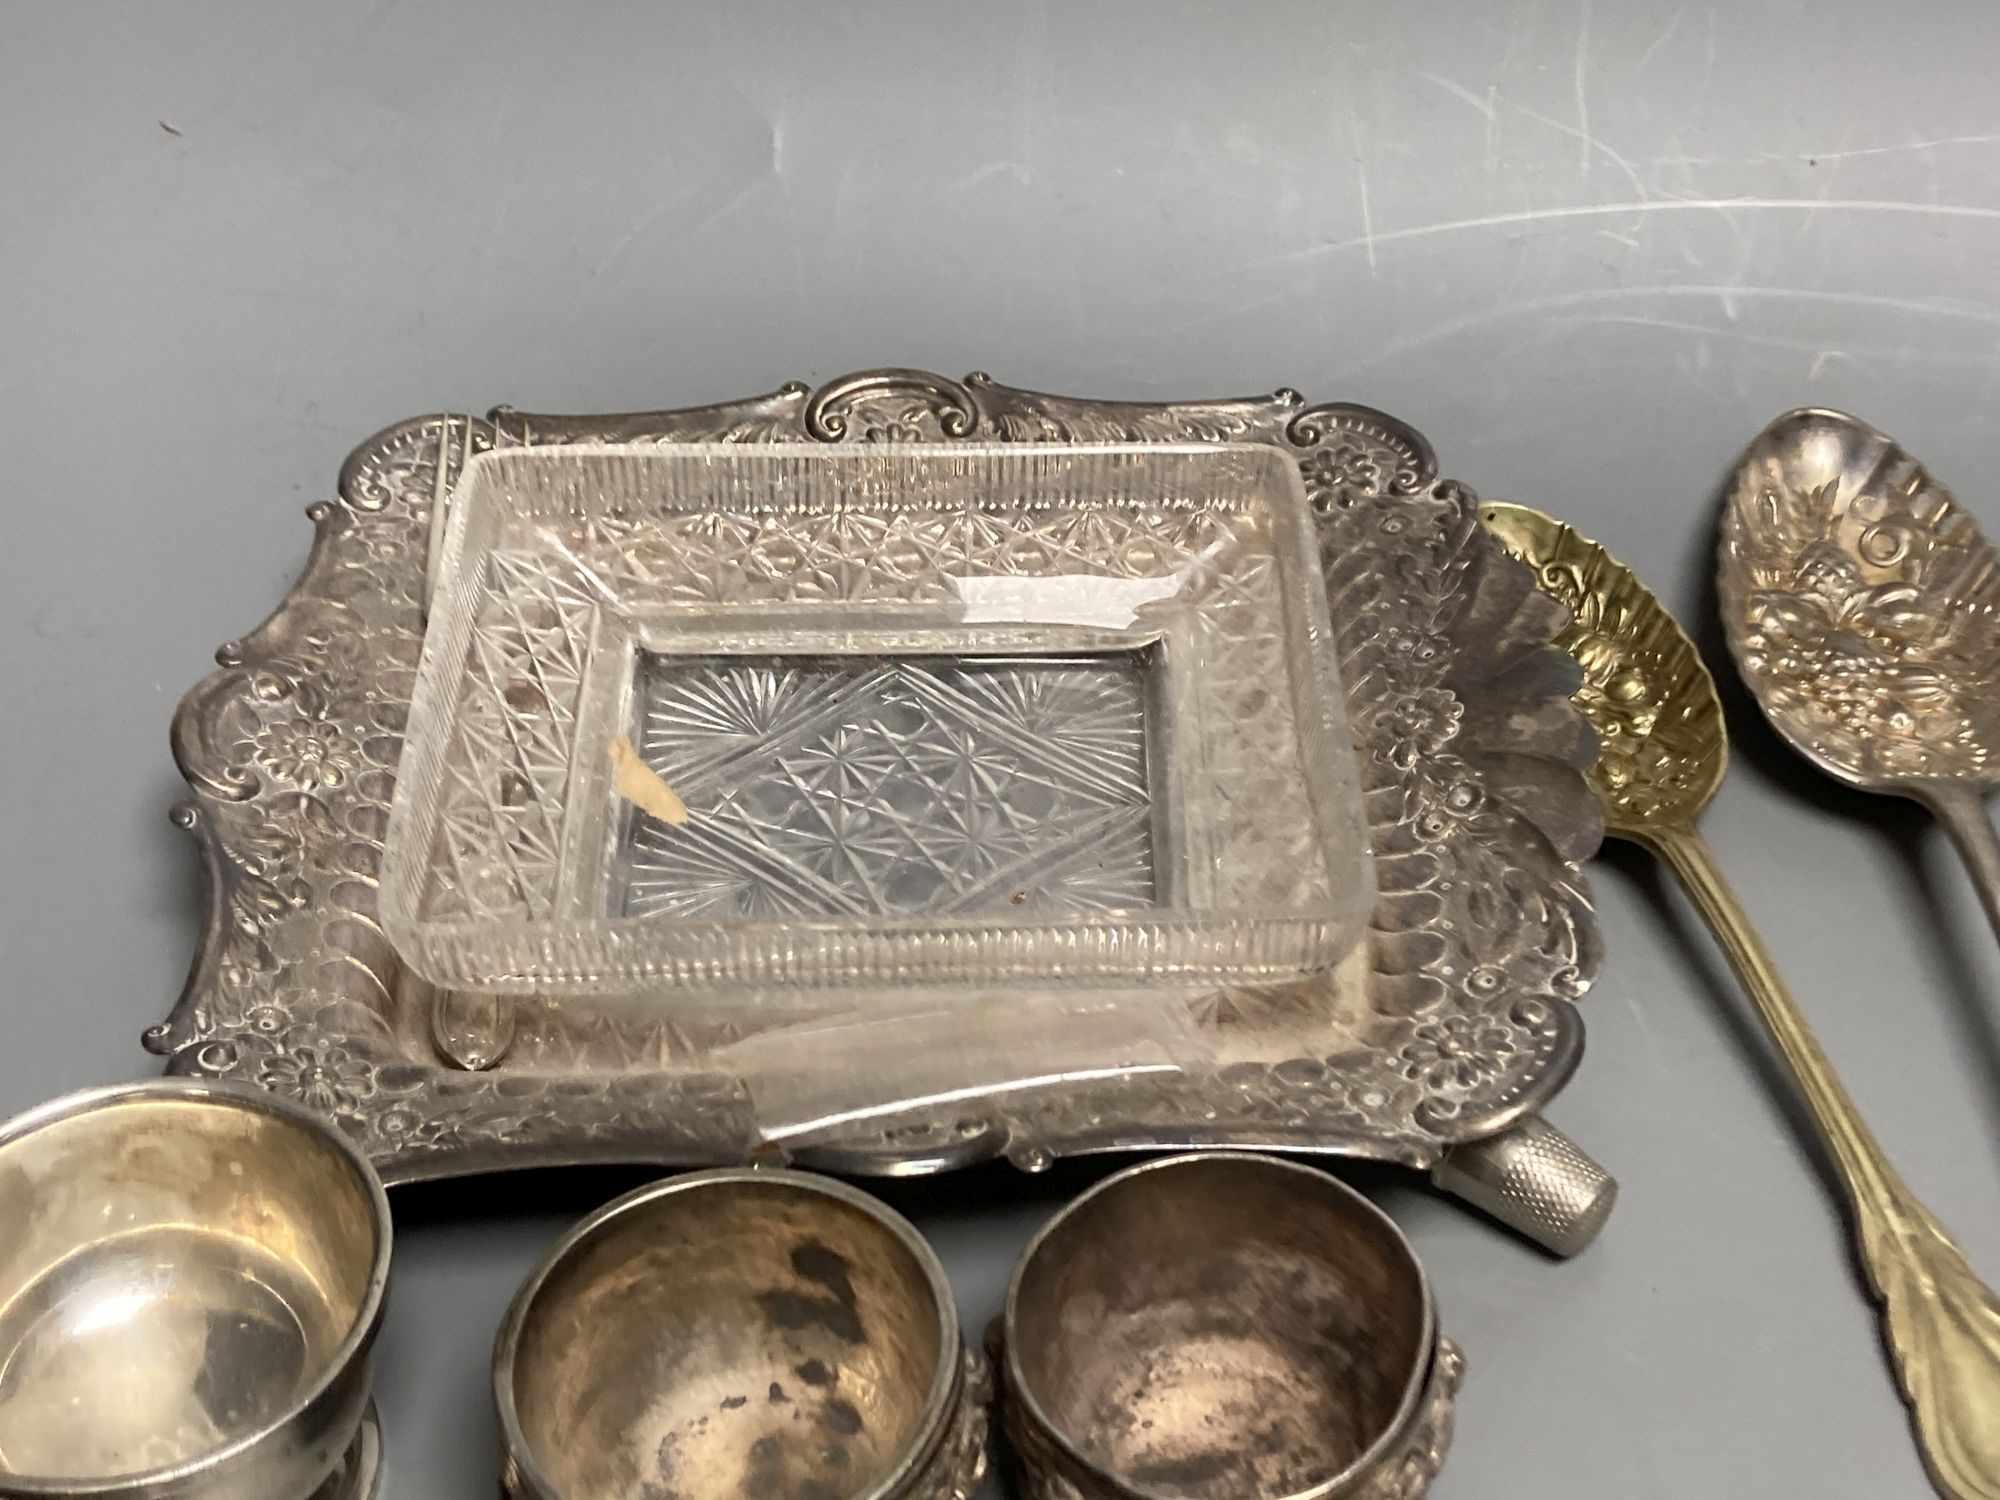 Four silver condiments, two silver thimbles, two Indian? salts and assorted plated flatware etc. - Image 3 of 6